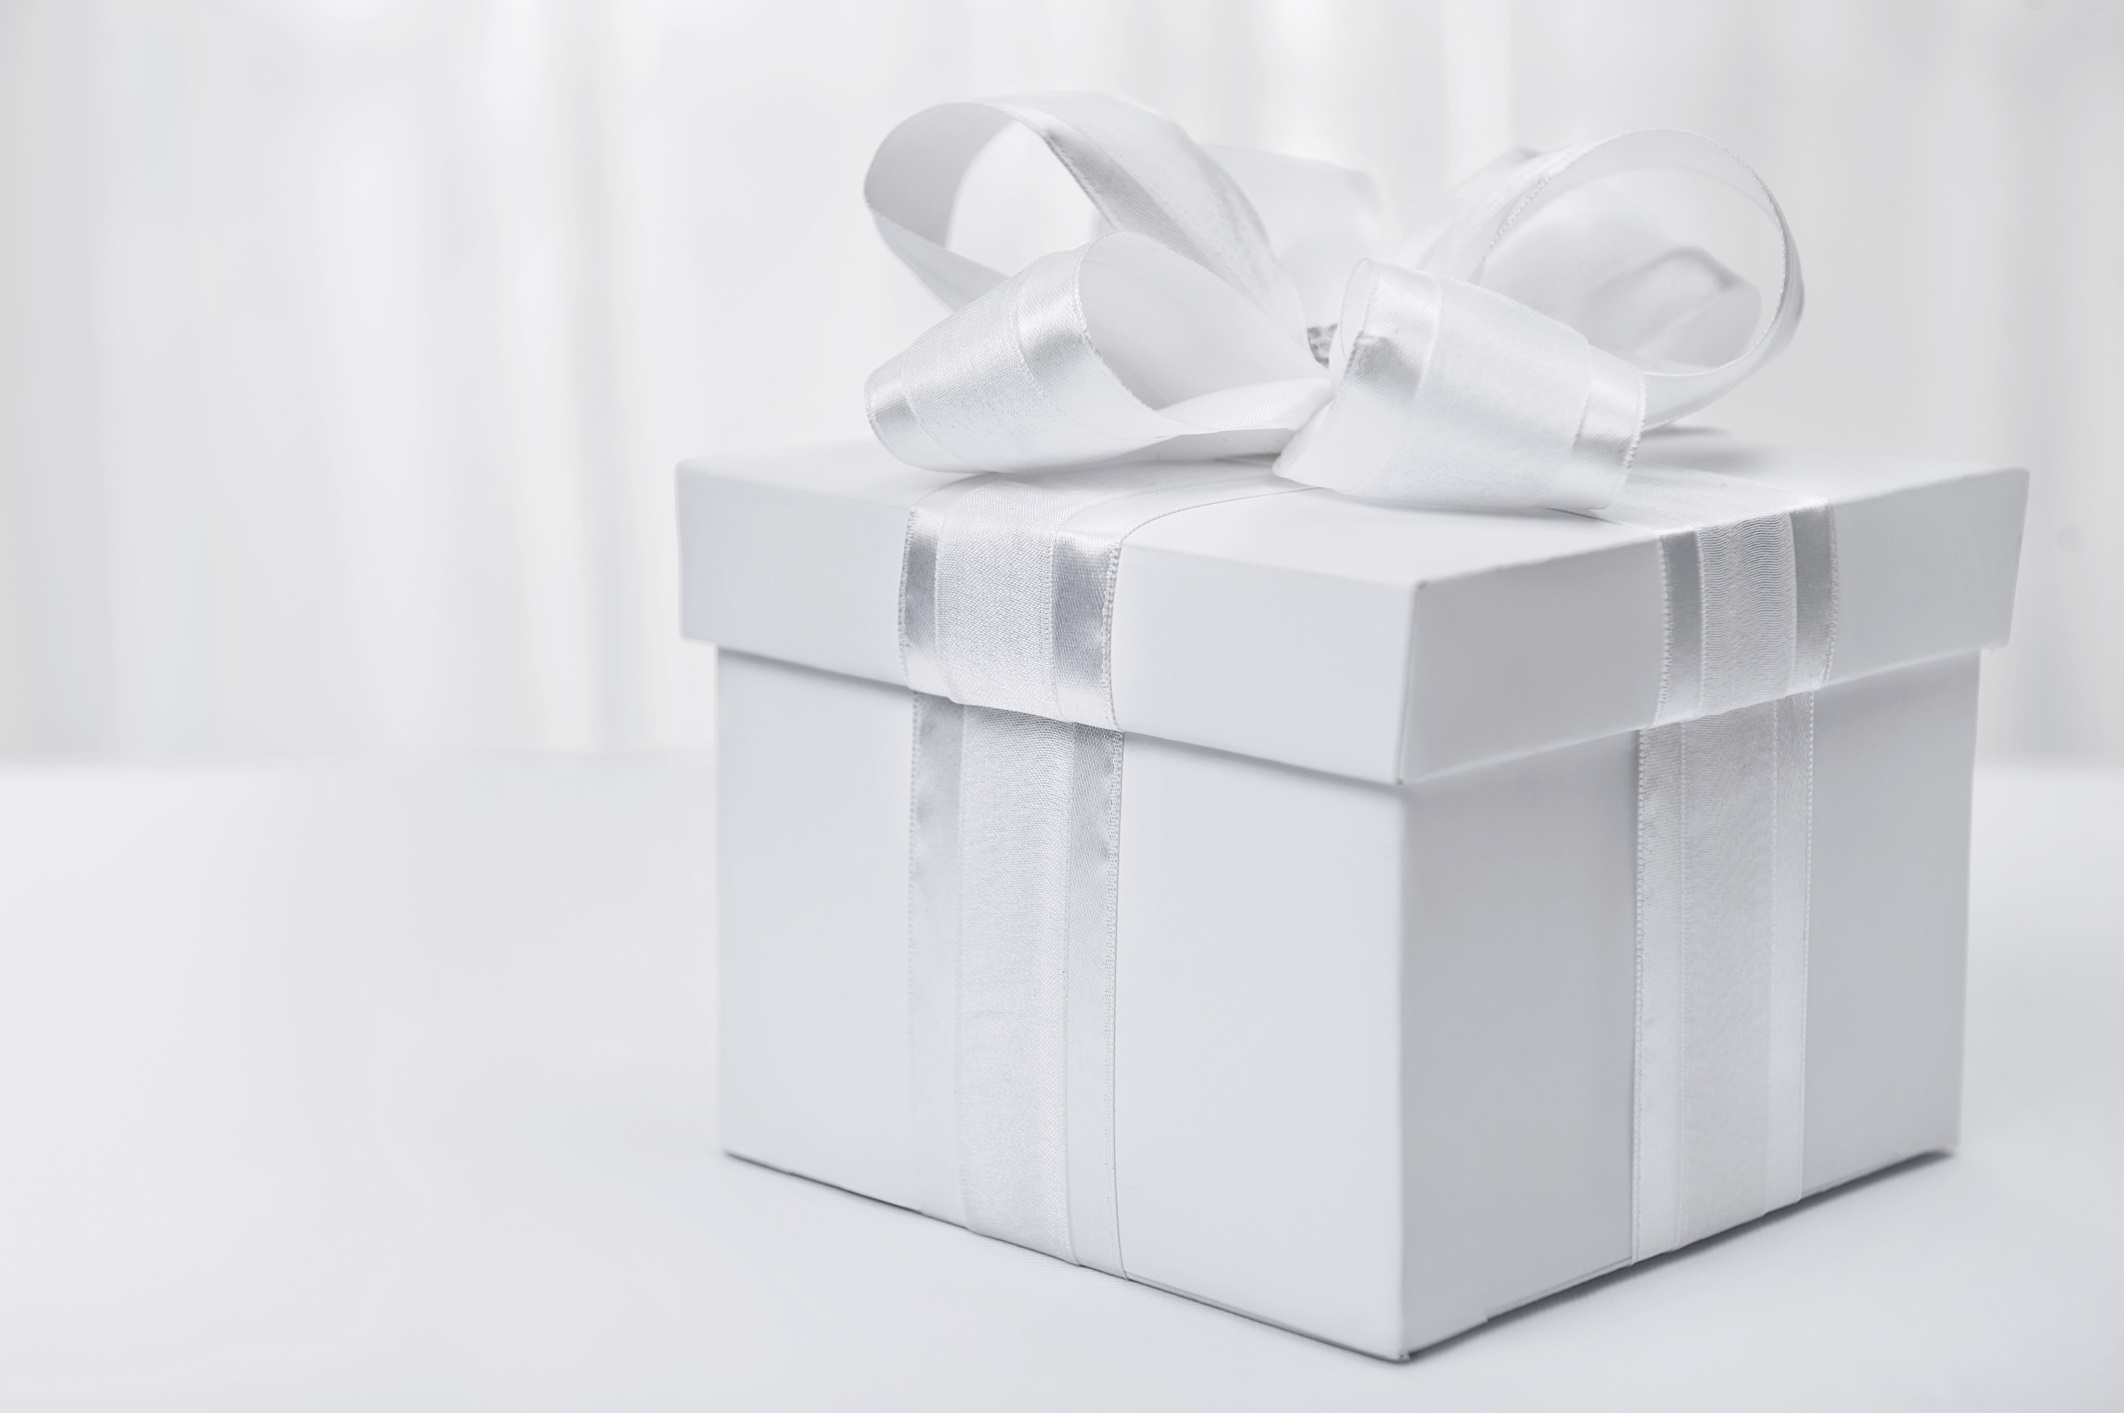 new wedding gift etiquette what you need to know before you send though the wedding gift is still part of the customs but wedding gift etiquette isn t what it used to be